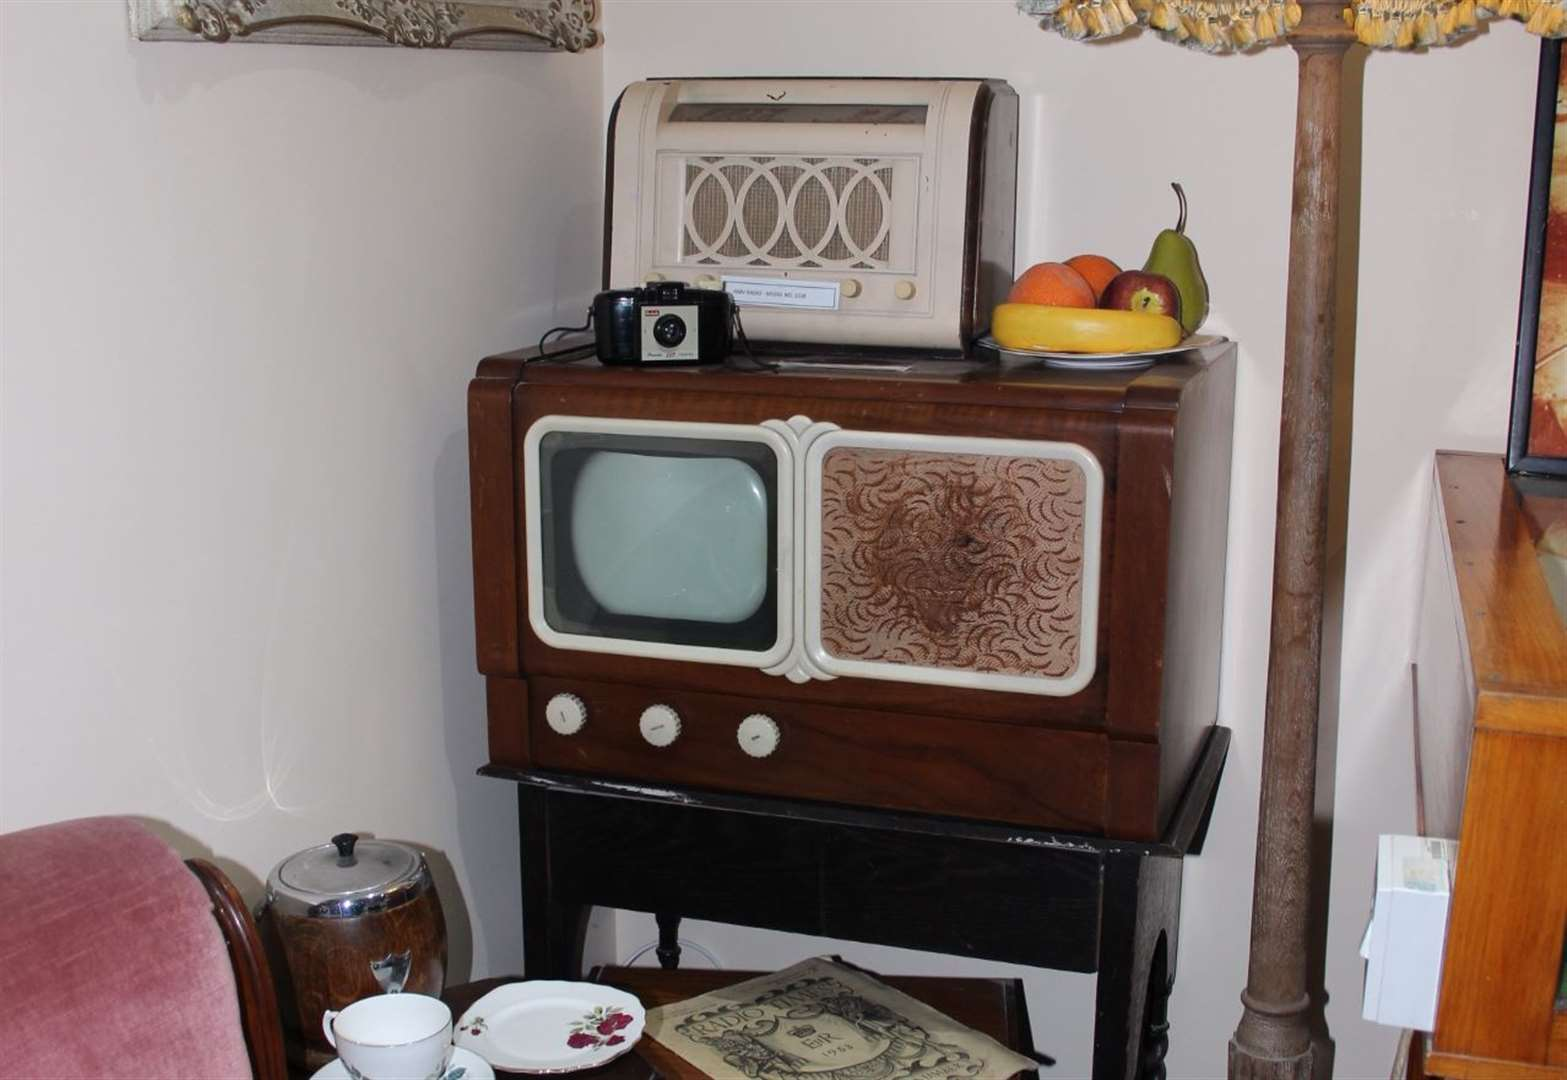 It's still back to black and white TV for a number of households in King's Lynn